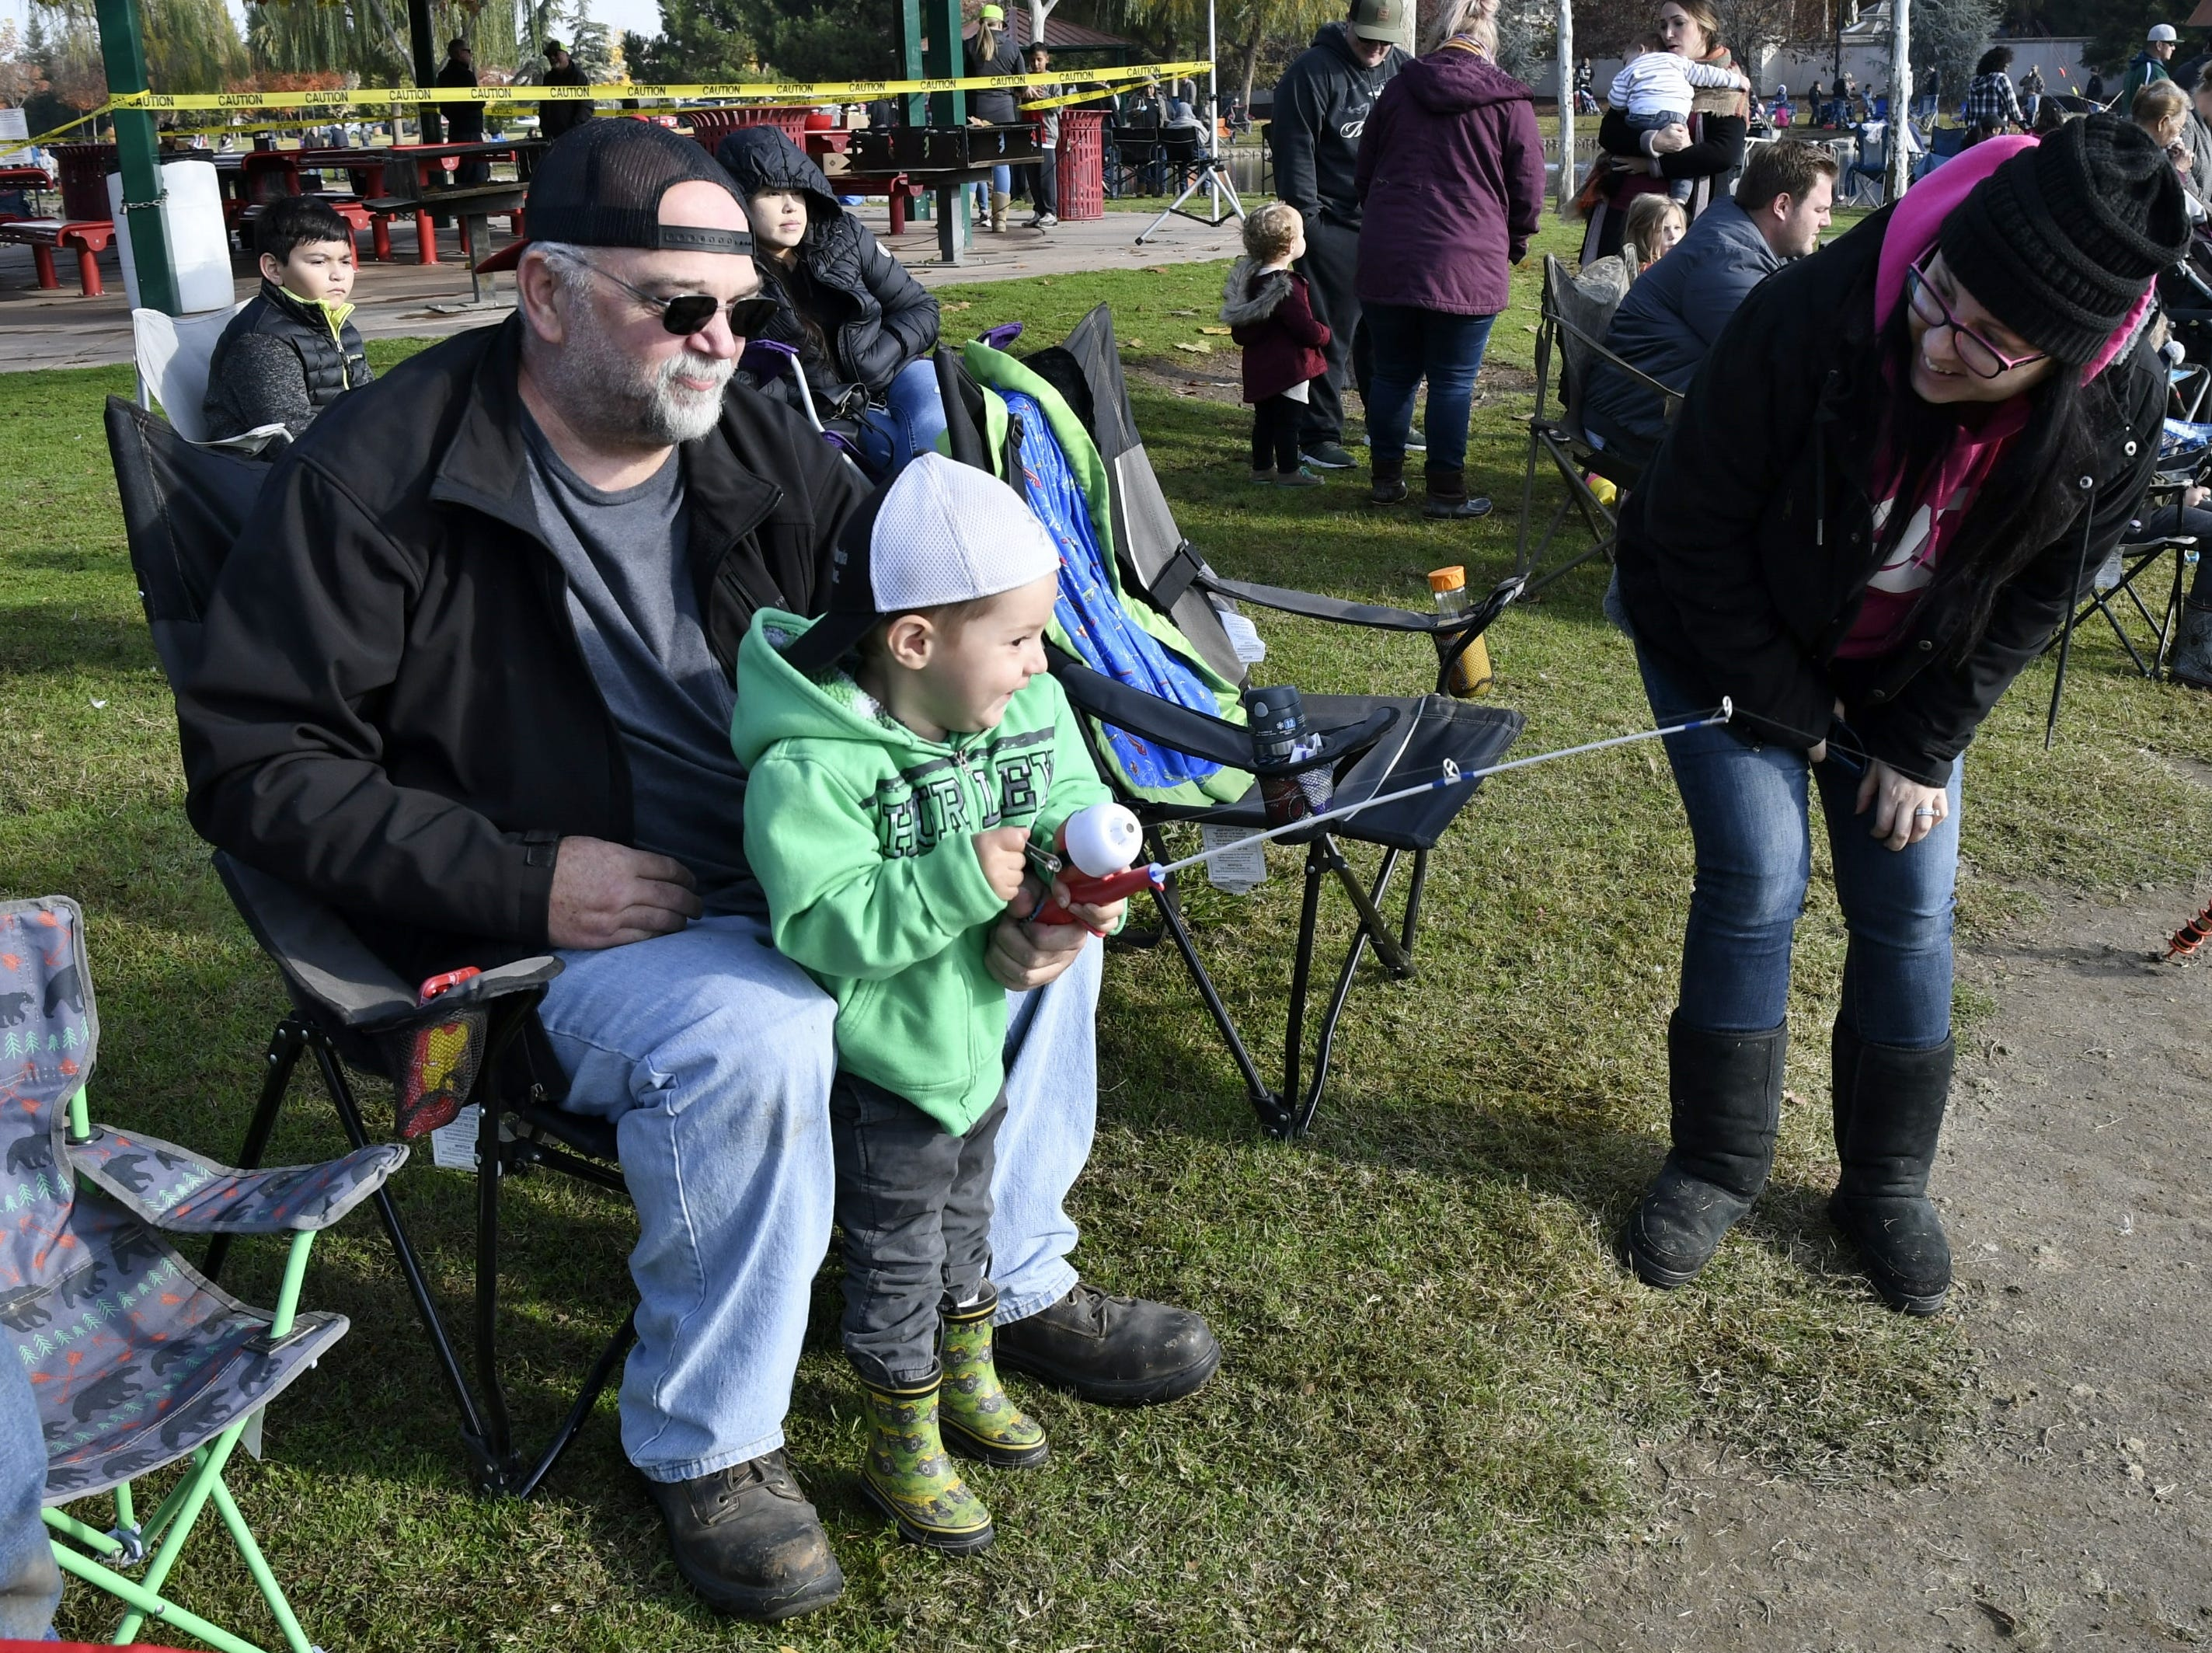 Jerrell Morris watches as grandson Lee Uzzell, 2, reels in his line at the annual Tulare Parks and Recreation Trout Fishing Derby at Del Lago Park on Saturday, December 1, 2018.